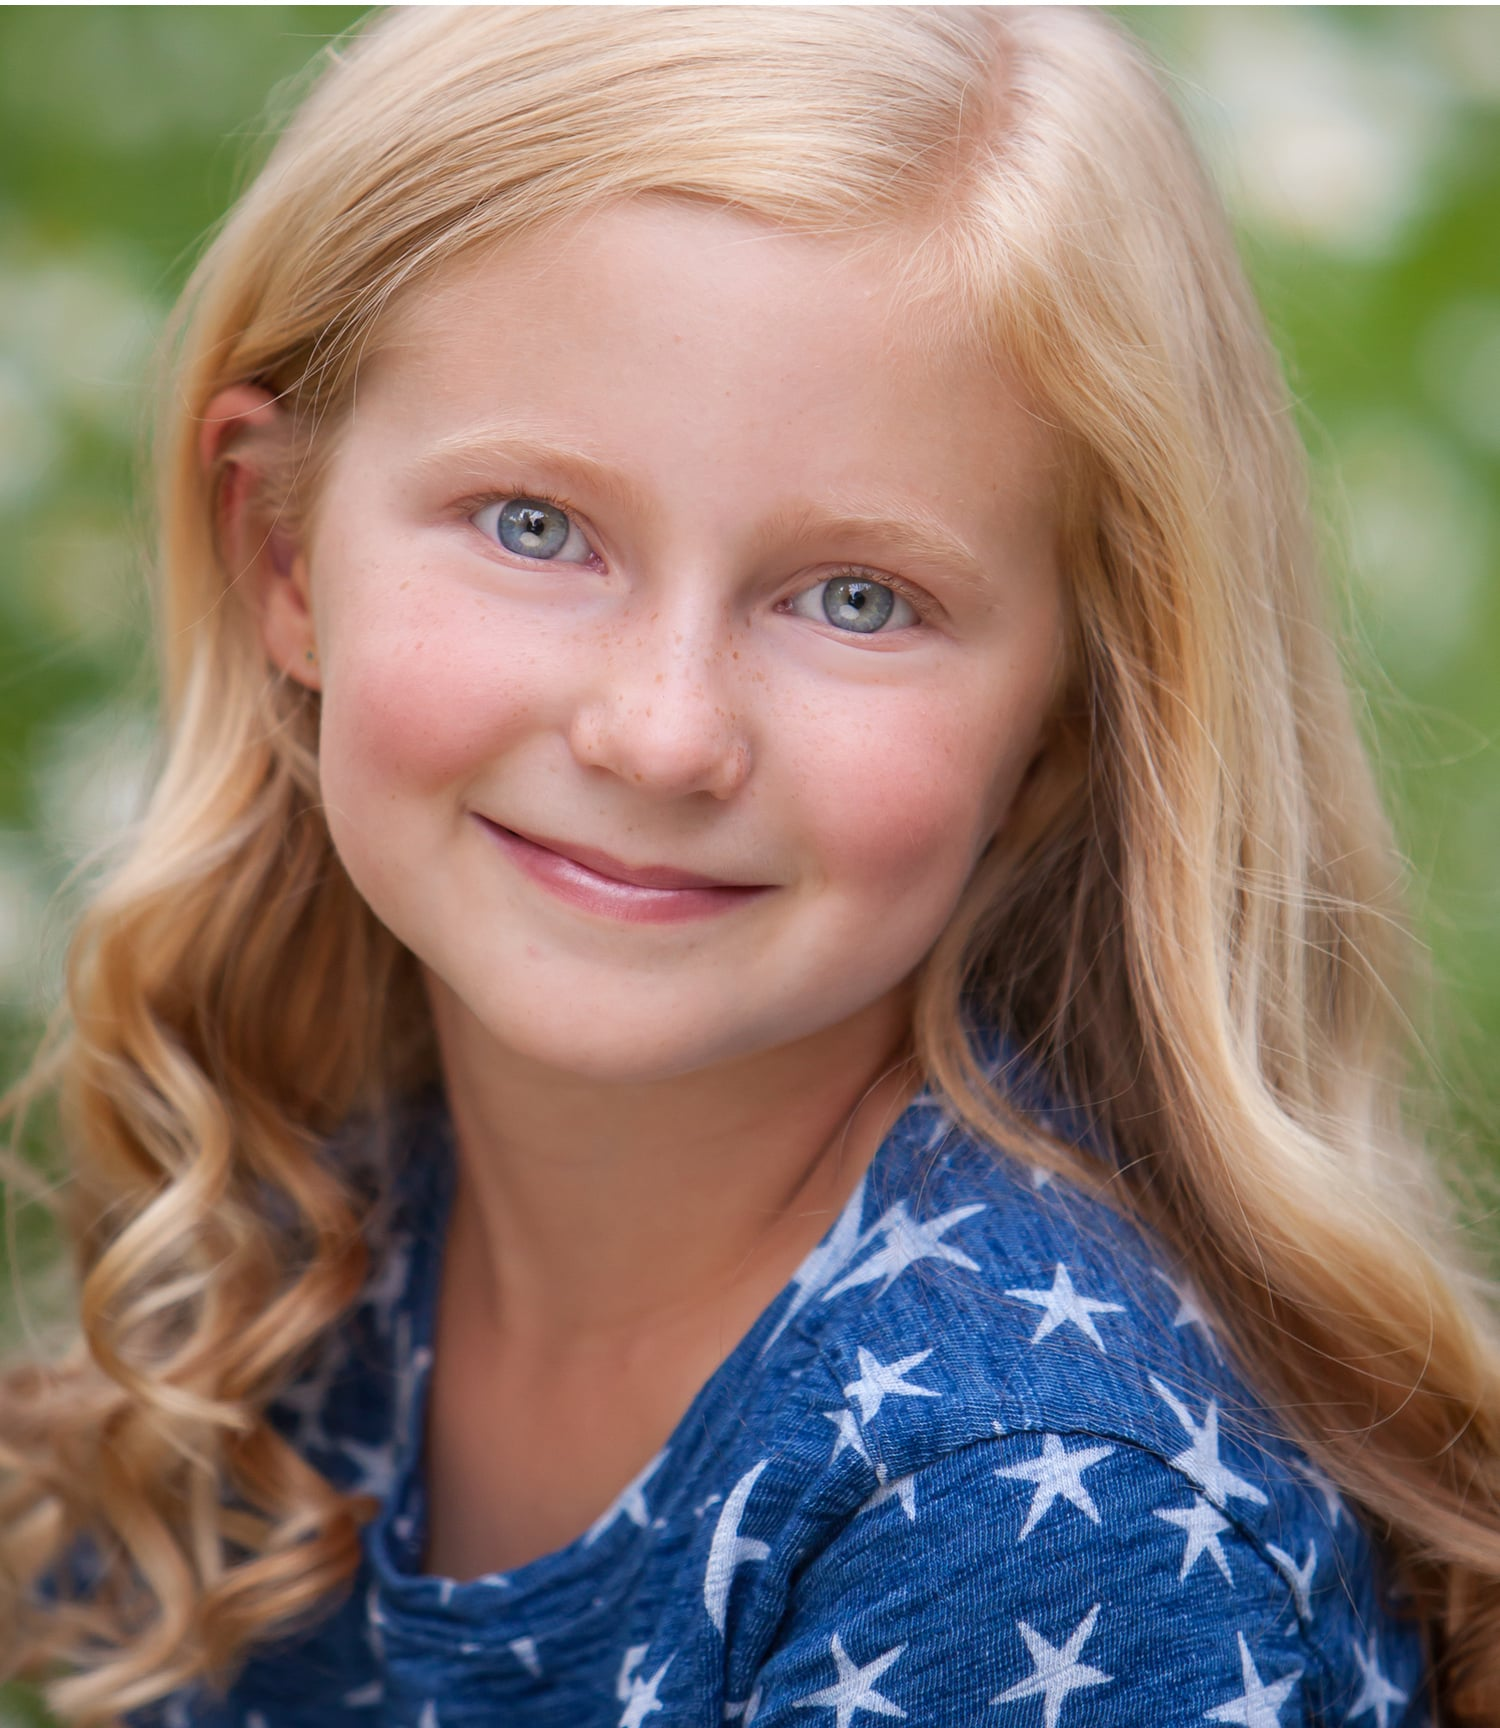 Child Actor headshot of young girl in Aspen Colorado, by photographer Jennifer Koskinen | Merritt Portrait Studio